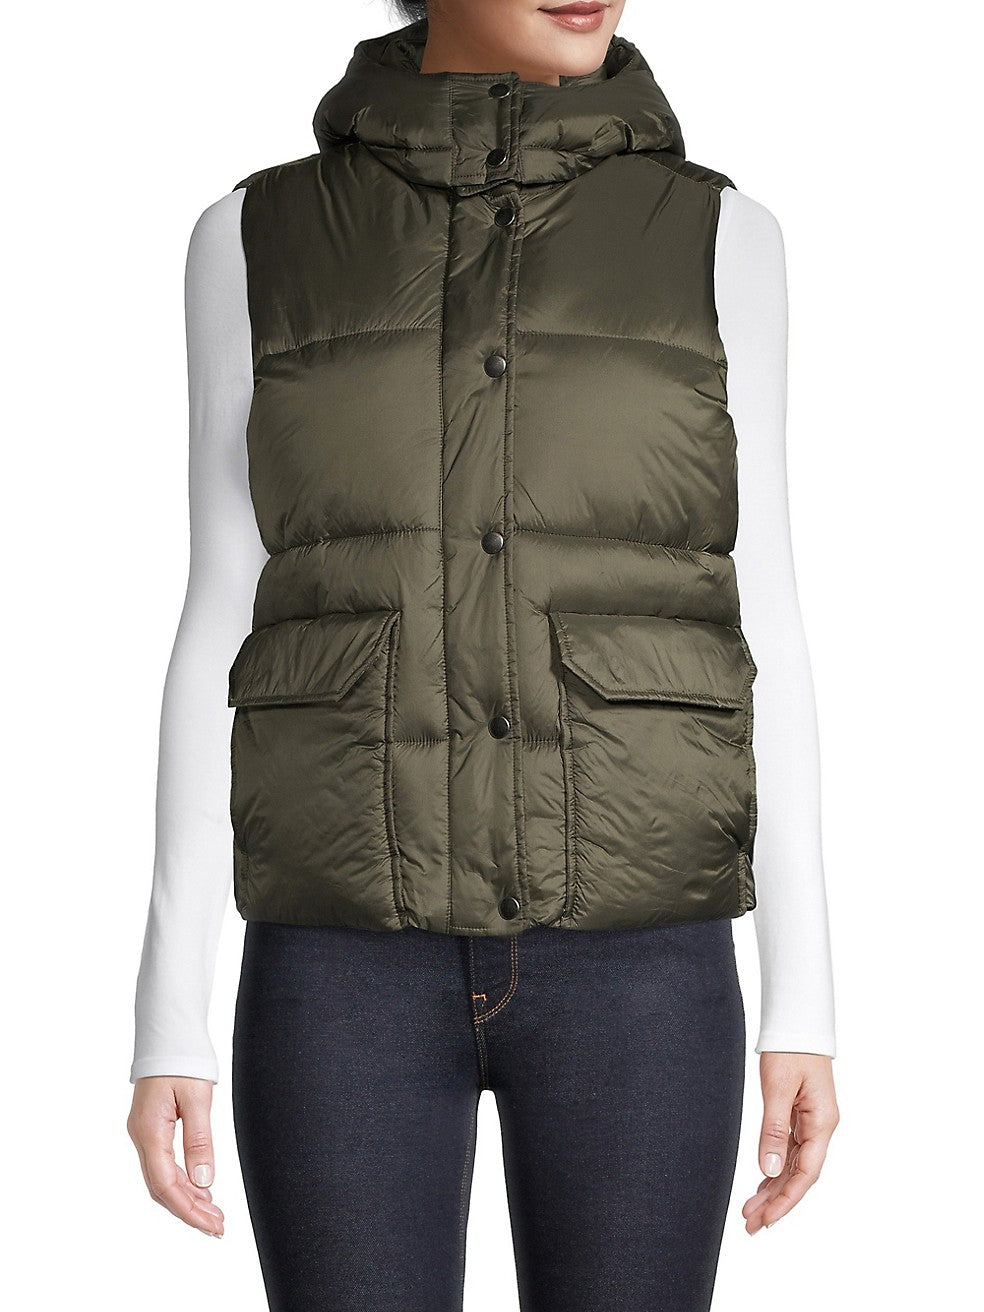 Buttoned Hooded Vest